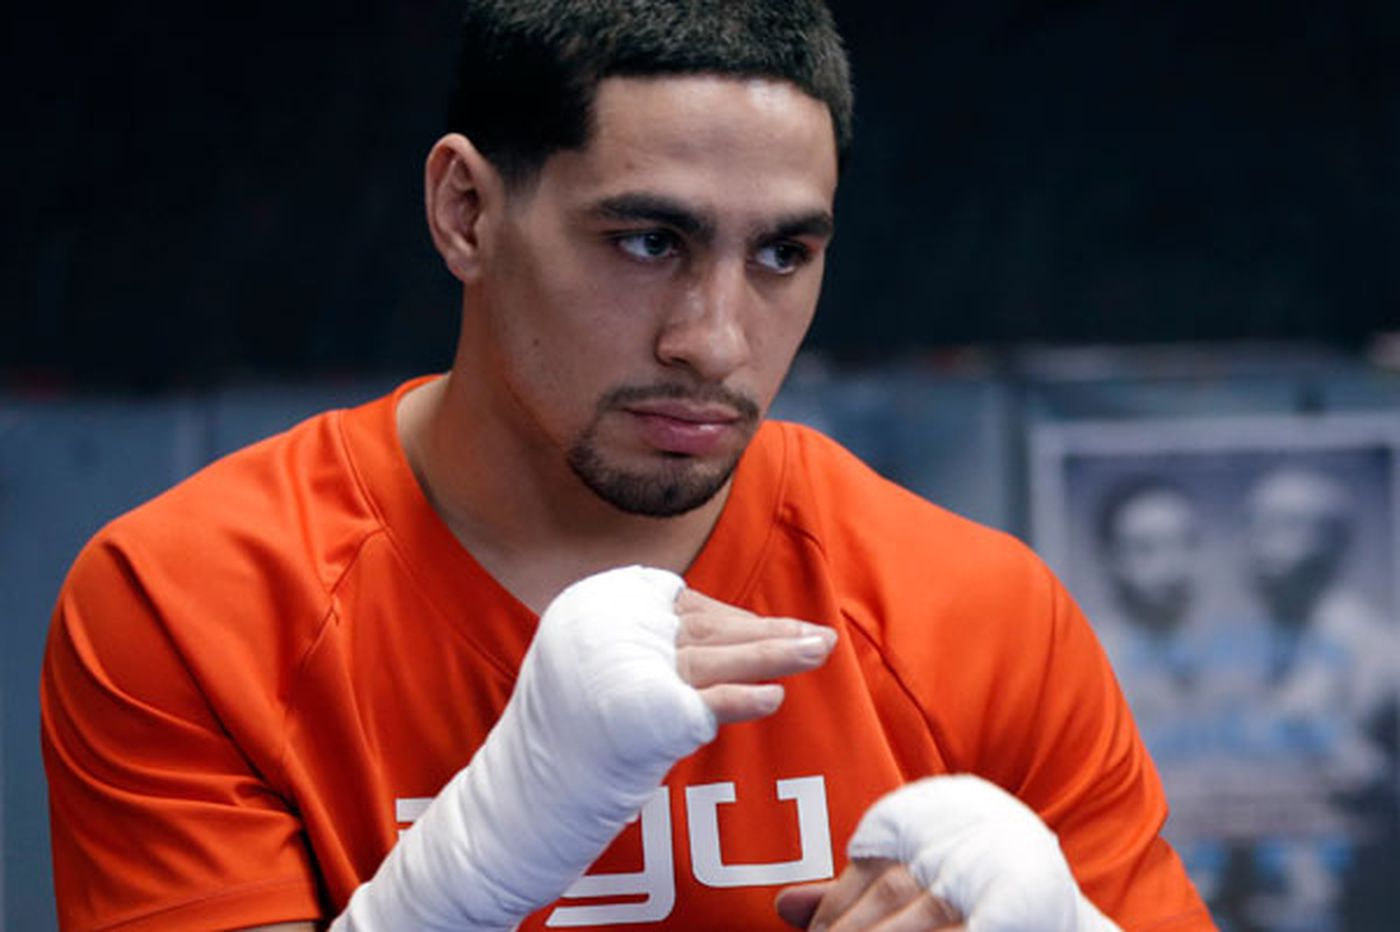 After Floyd Mayweather's win, is Danny Garcia next?